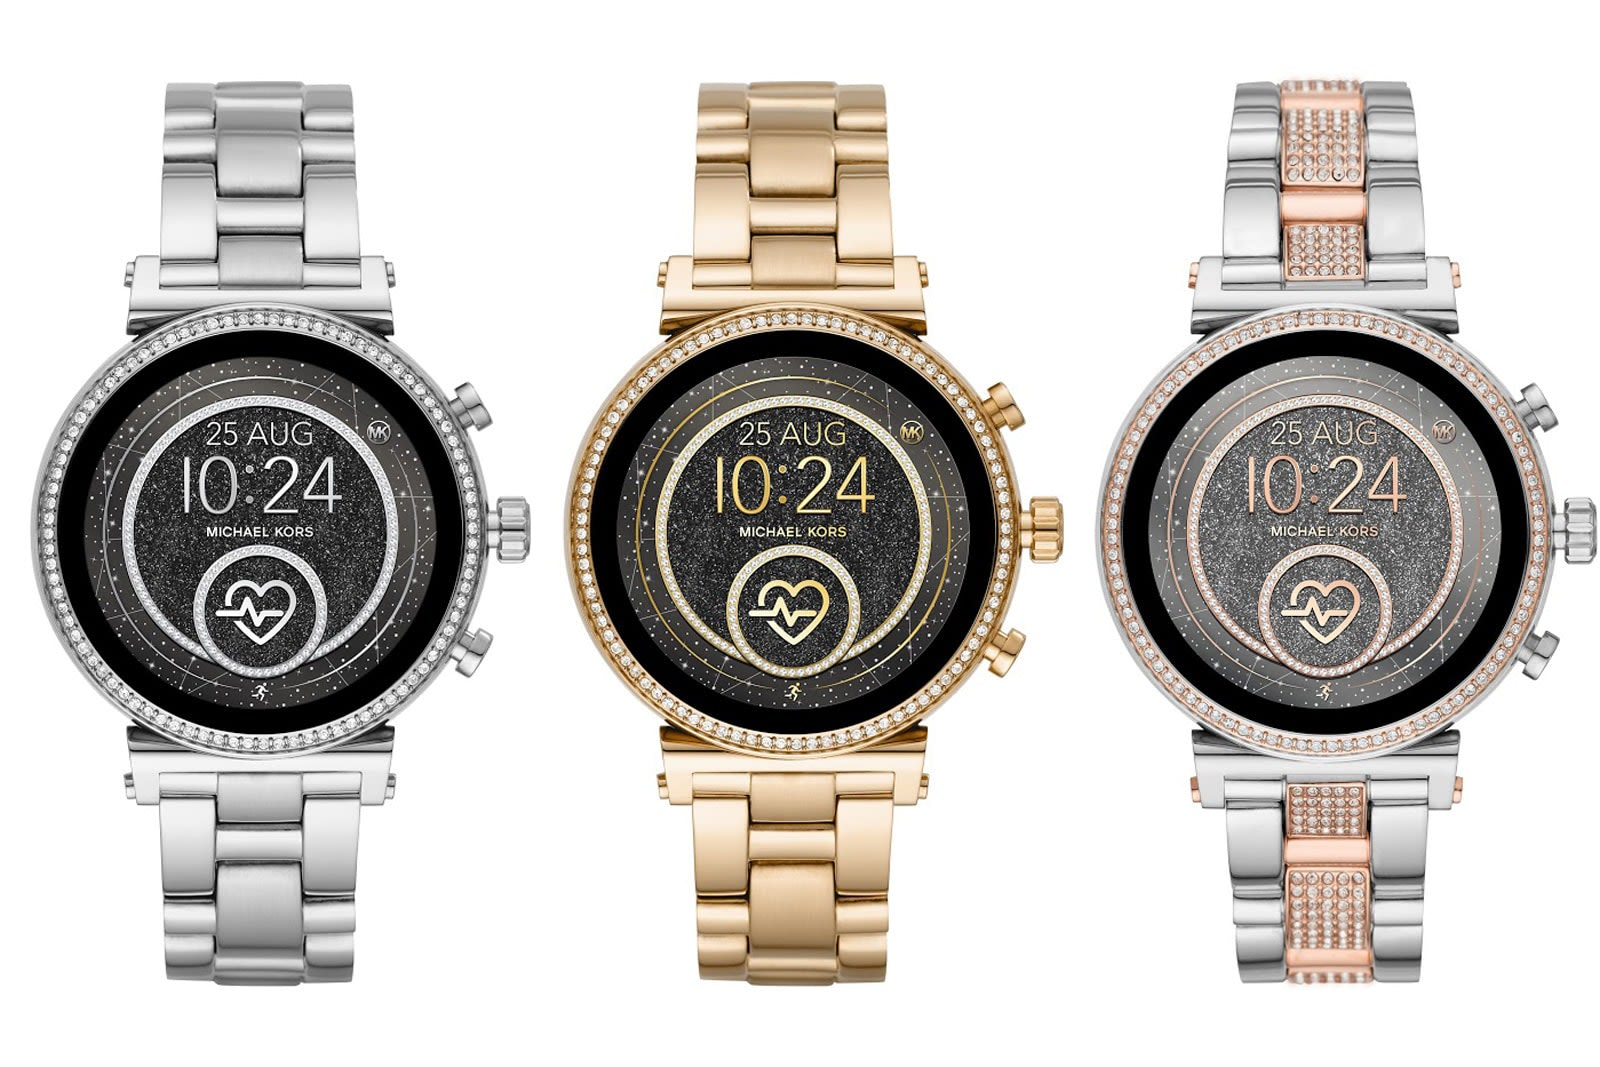 b276ce2862b Michael Kors  Sofie 2.0 smartwatch is about more than just fashion